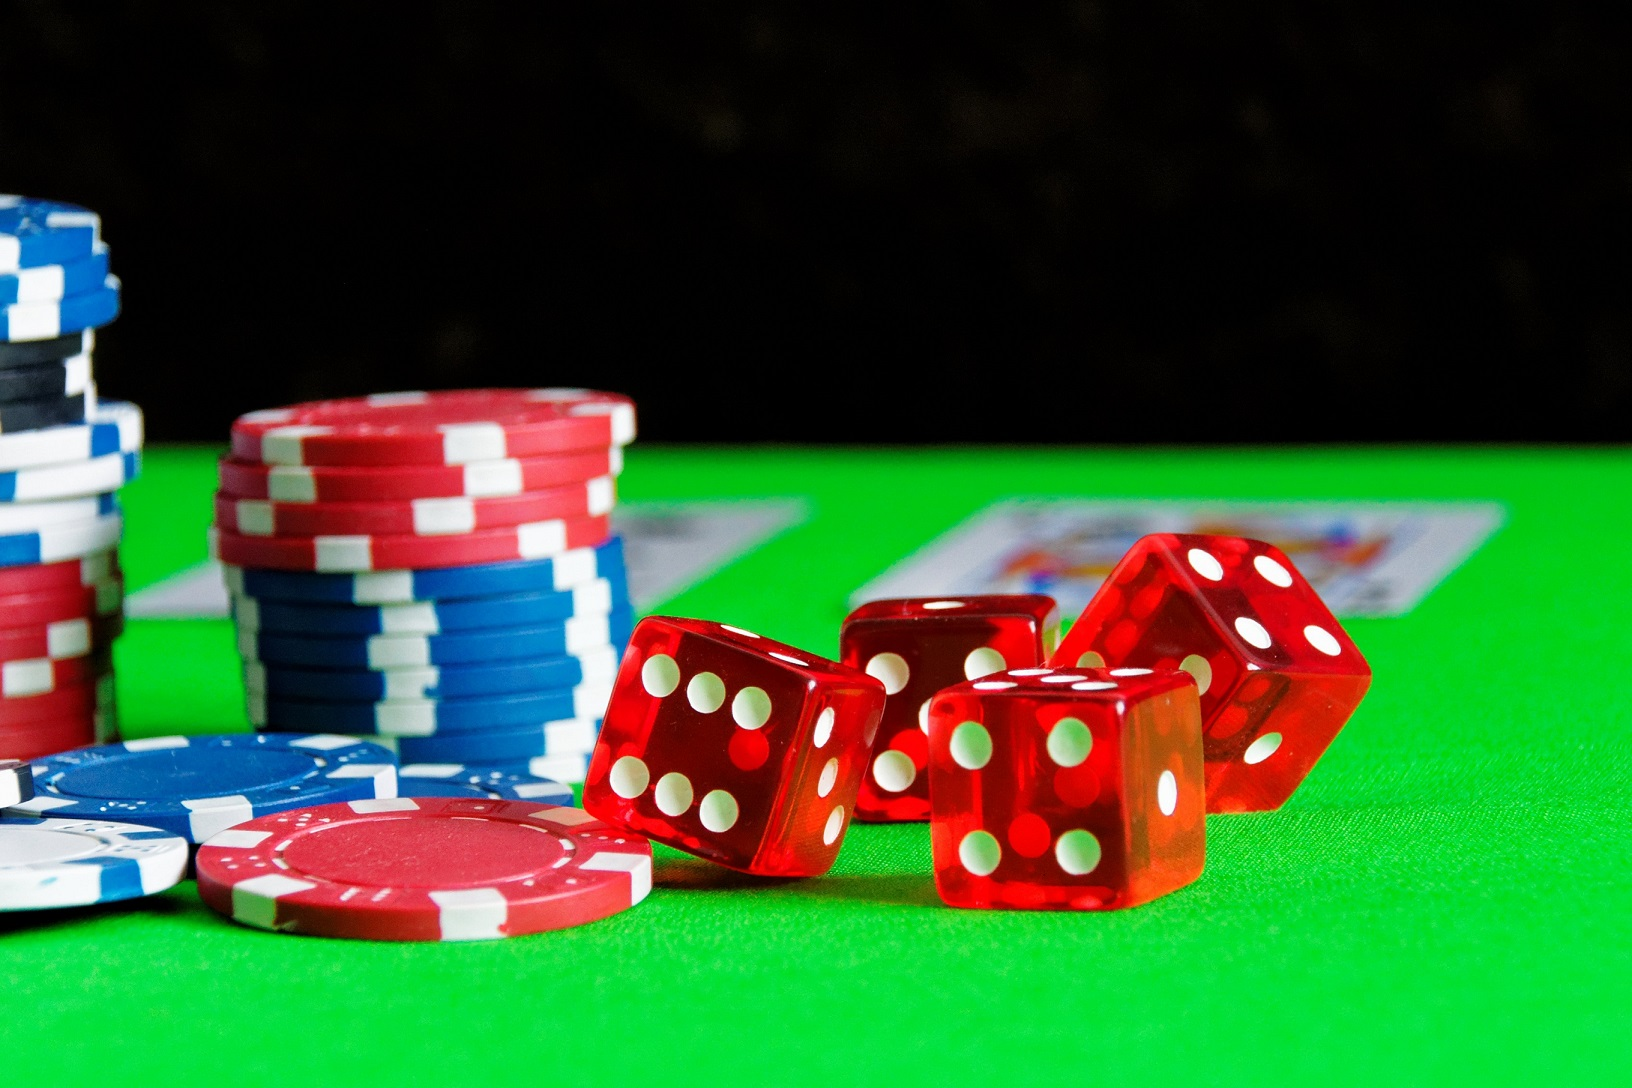 If Online Gambling Is So Unhealthy, Why Don't Statistics Show It?